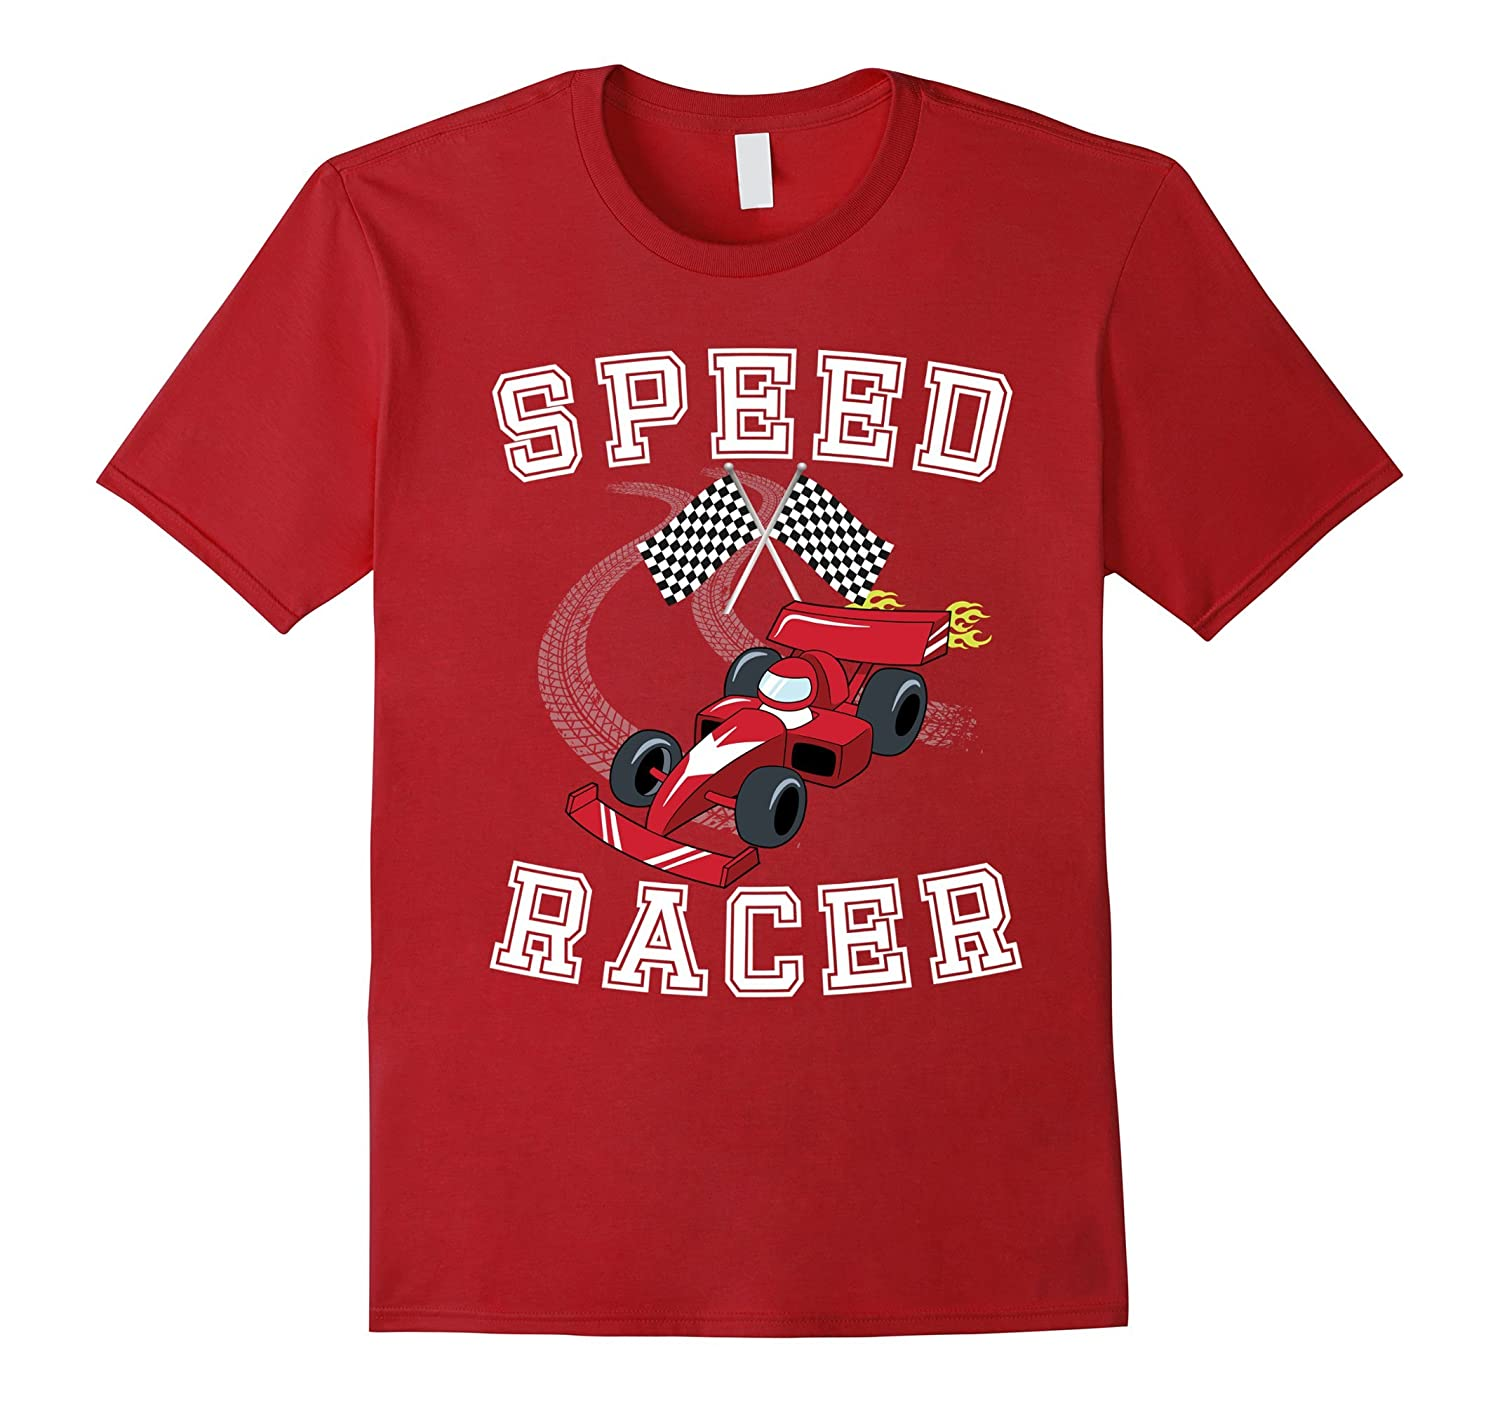 Speed Racer, Short SleeveT-shirt for Boys and Teenagers